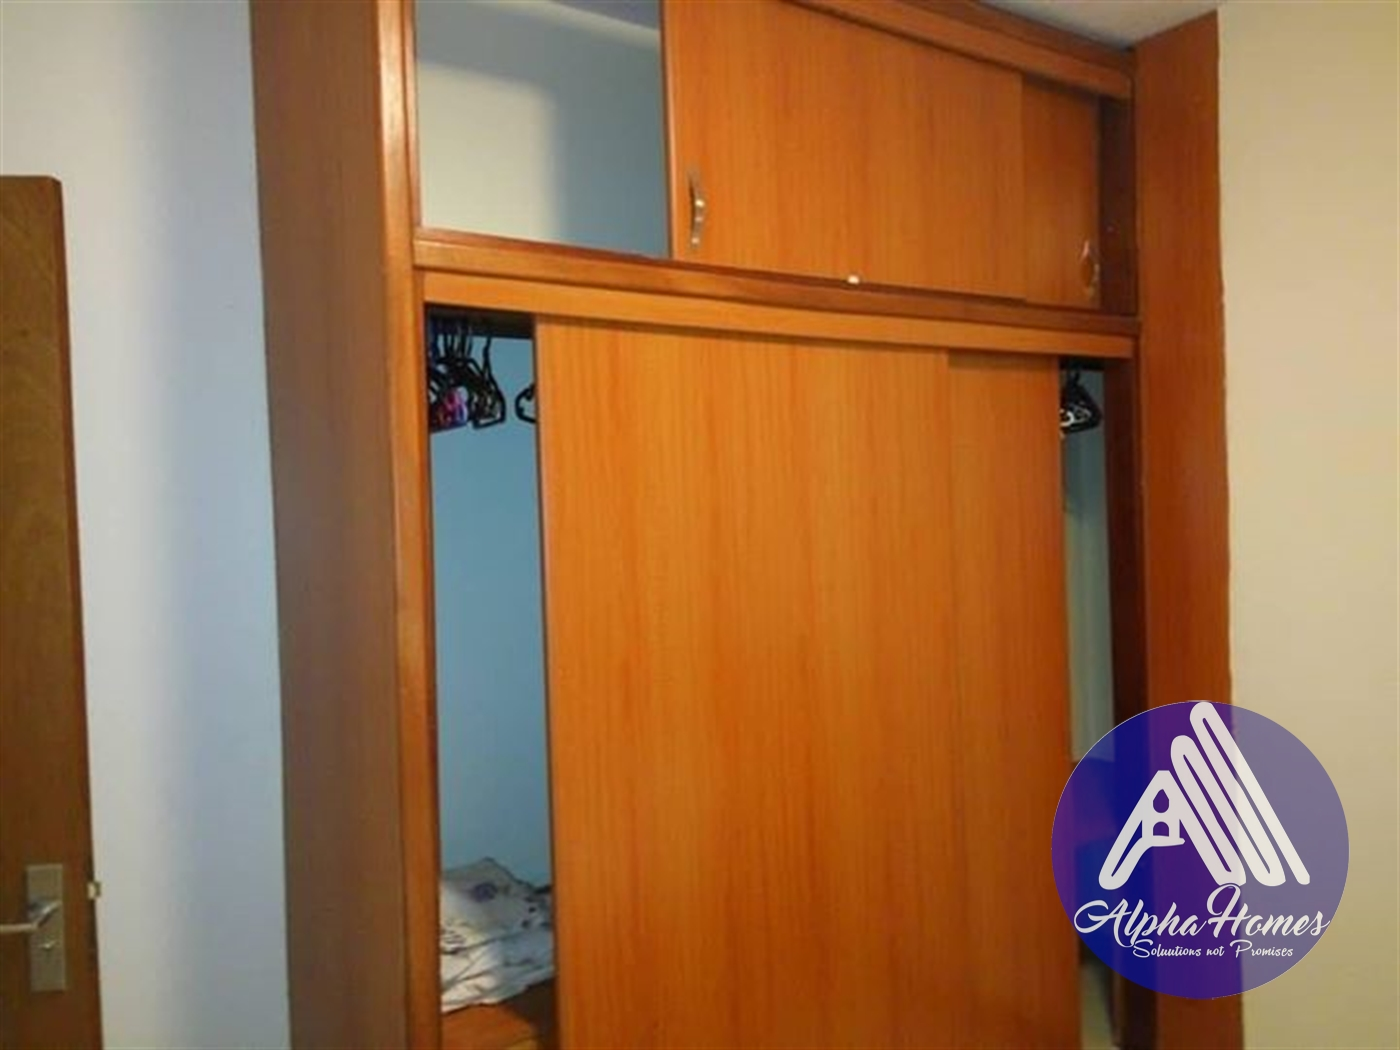 Apartment for rent in Munyonyo Kampala